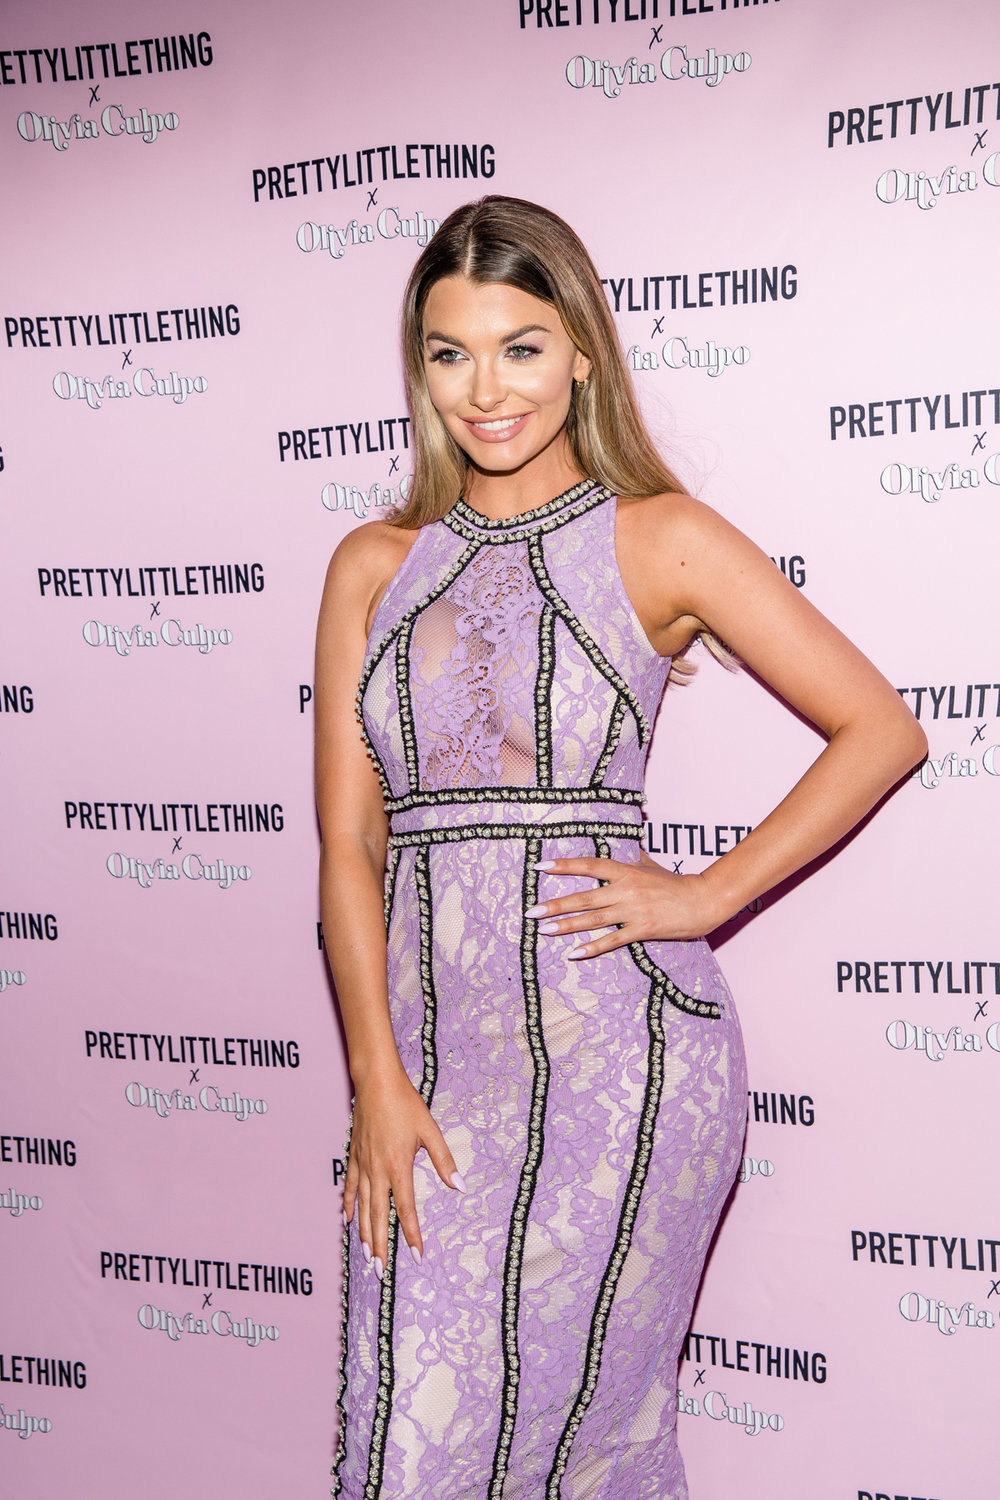 PrettyLittleThing PLT X Olivia Culpo Collection  Celebrity Launch Party Emily Sears.jpg